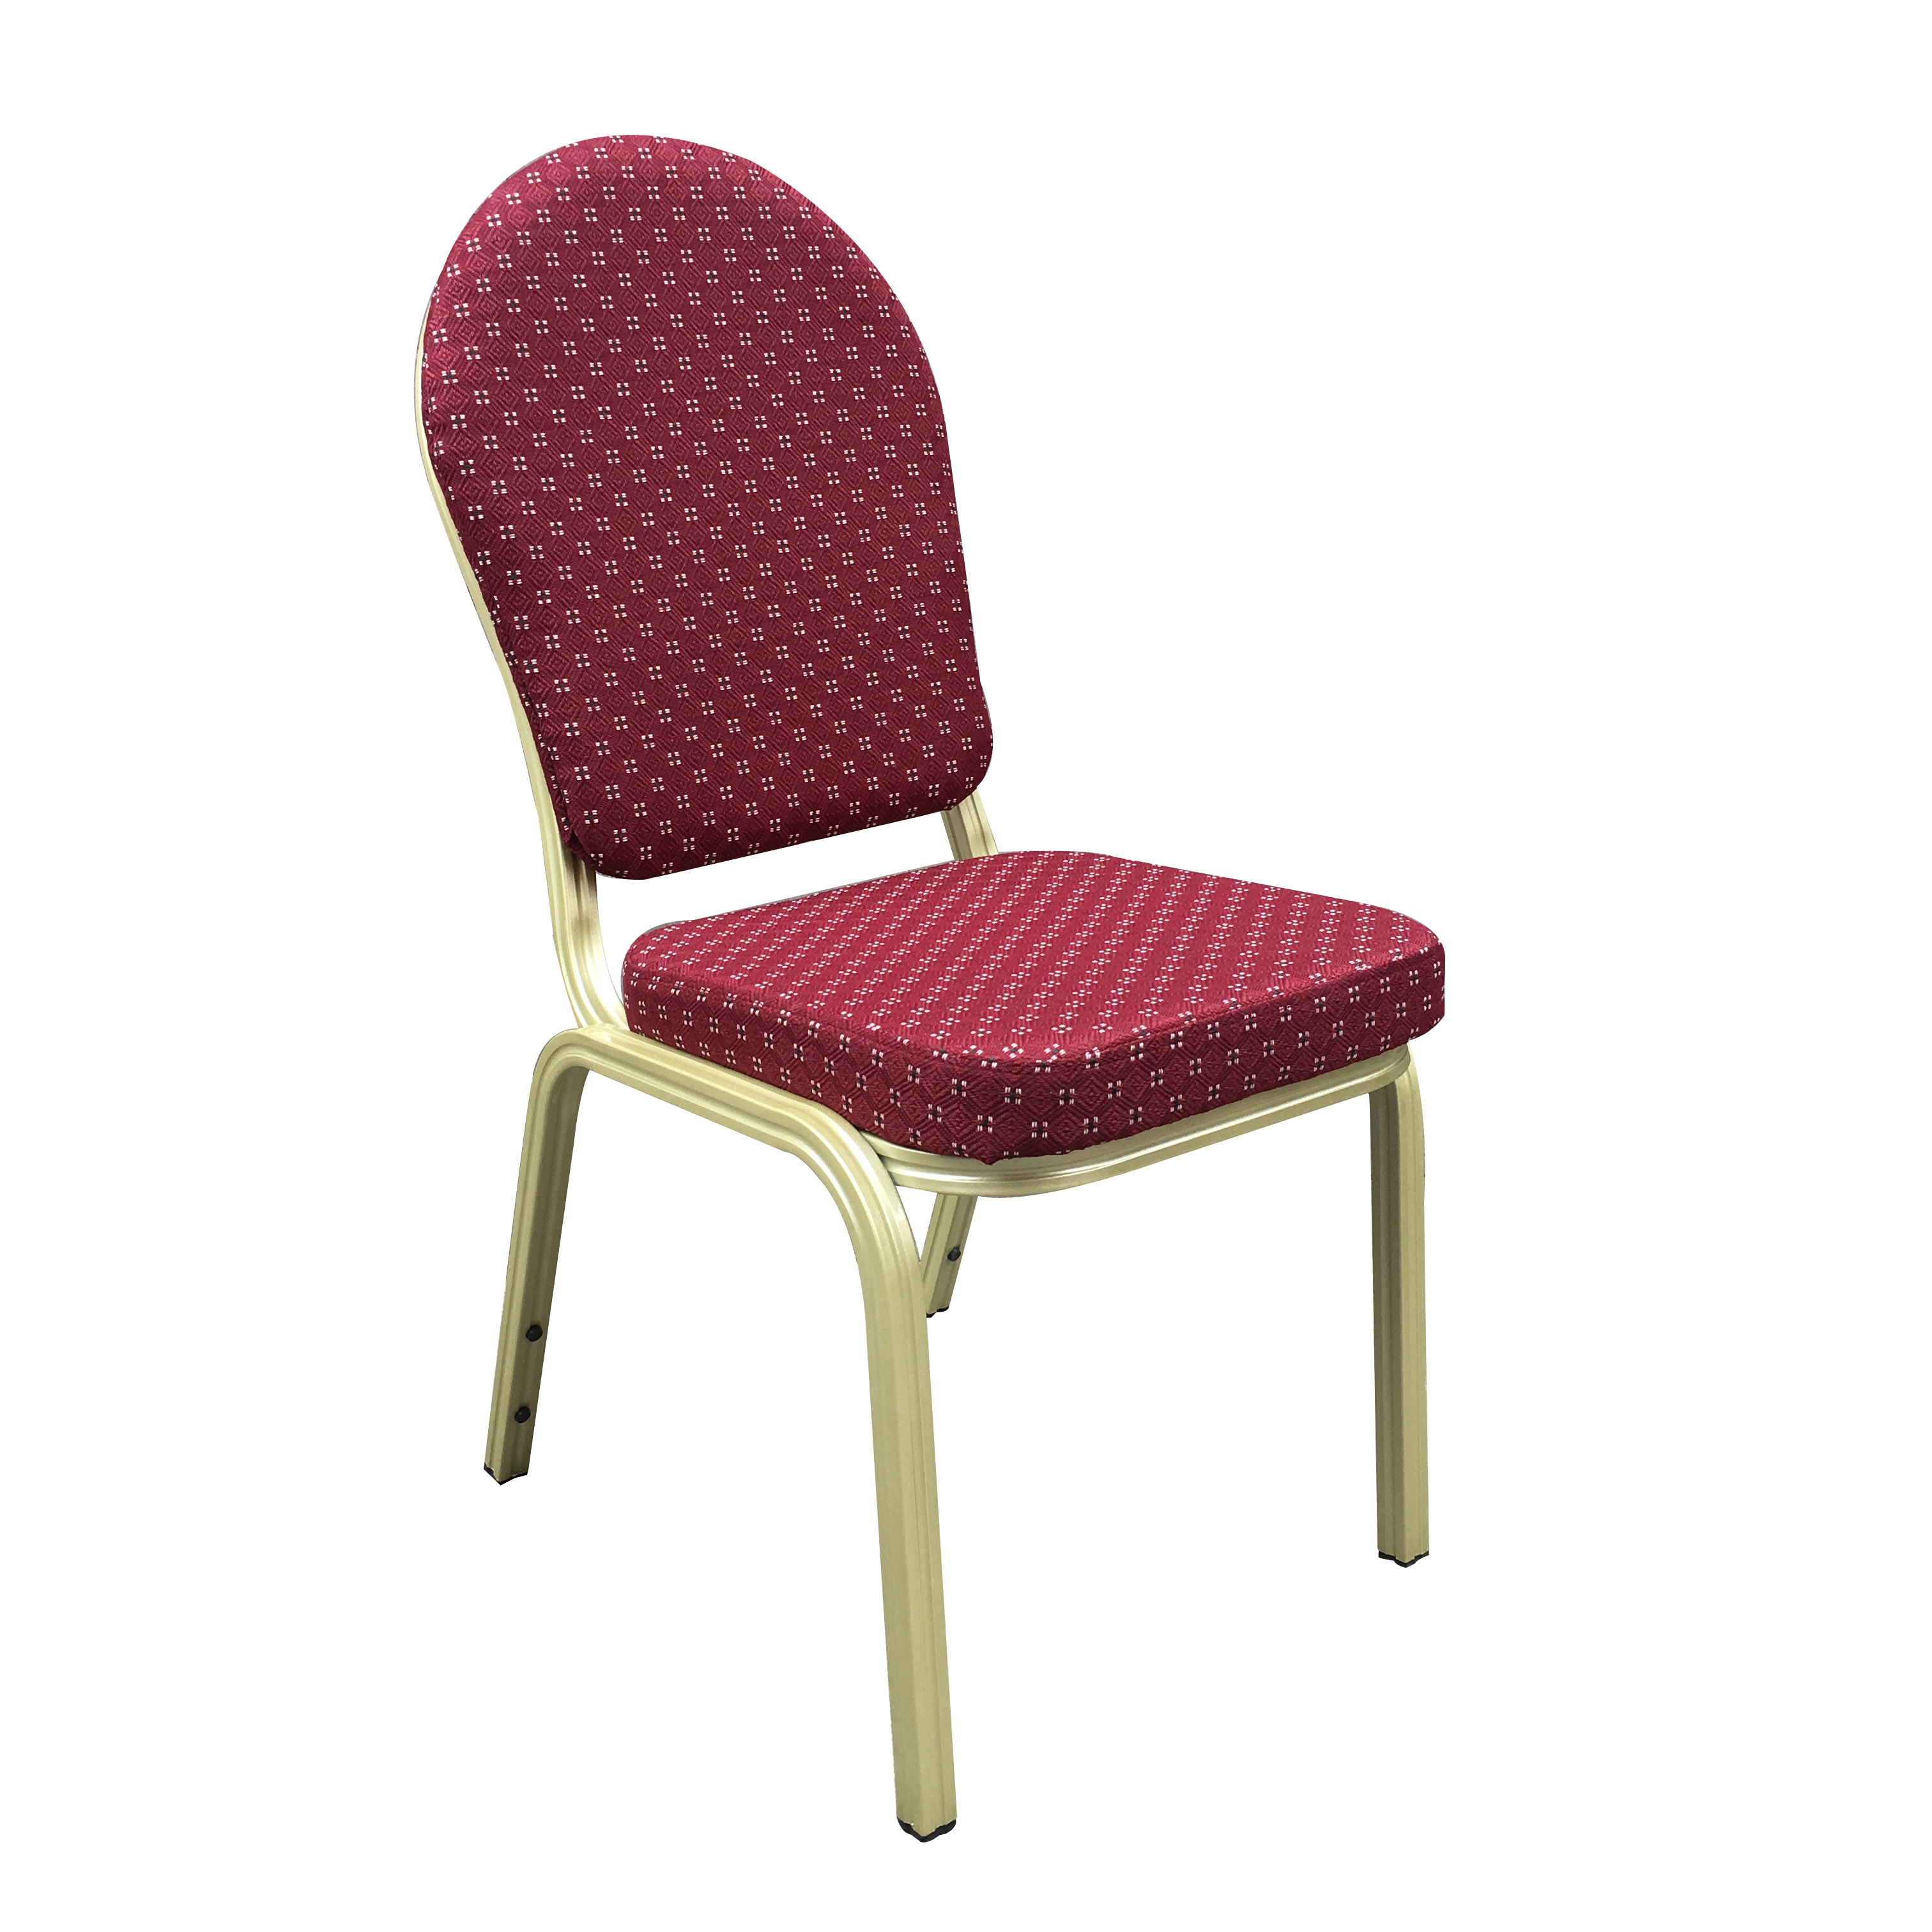 church banquet tables and chairs mexican restaurant china gold supplier for wholesale chair dimensions